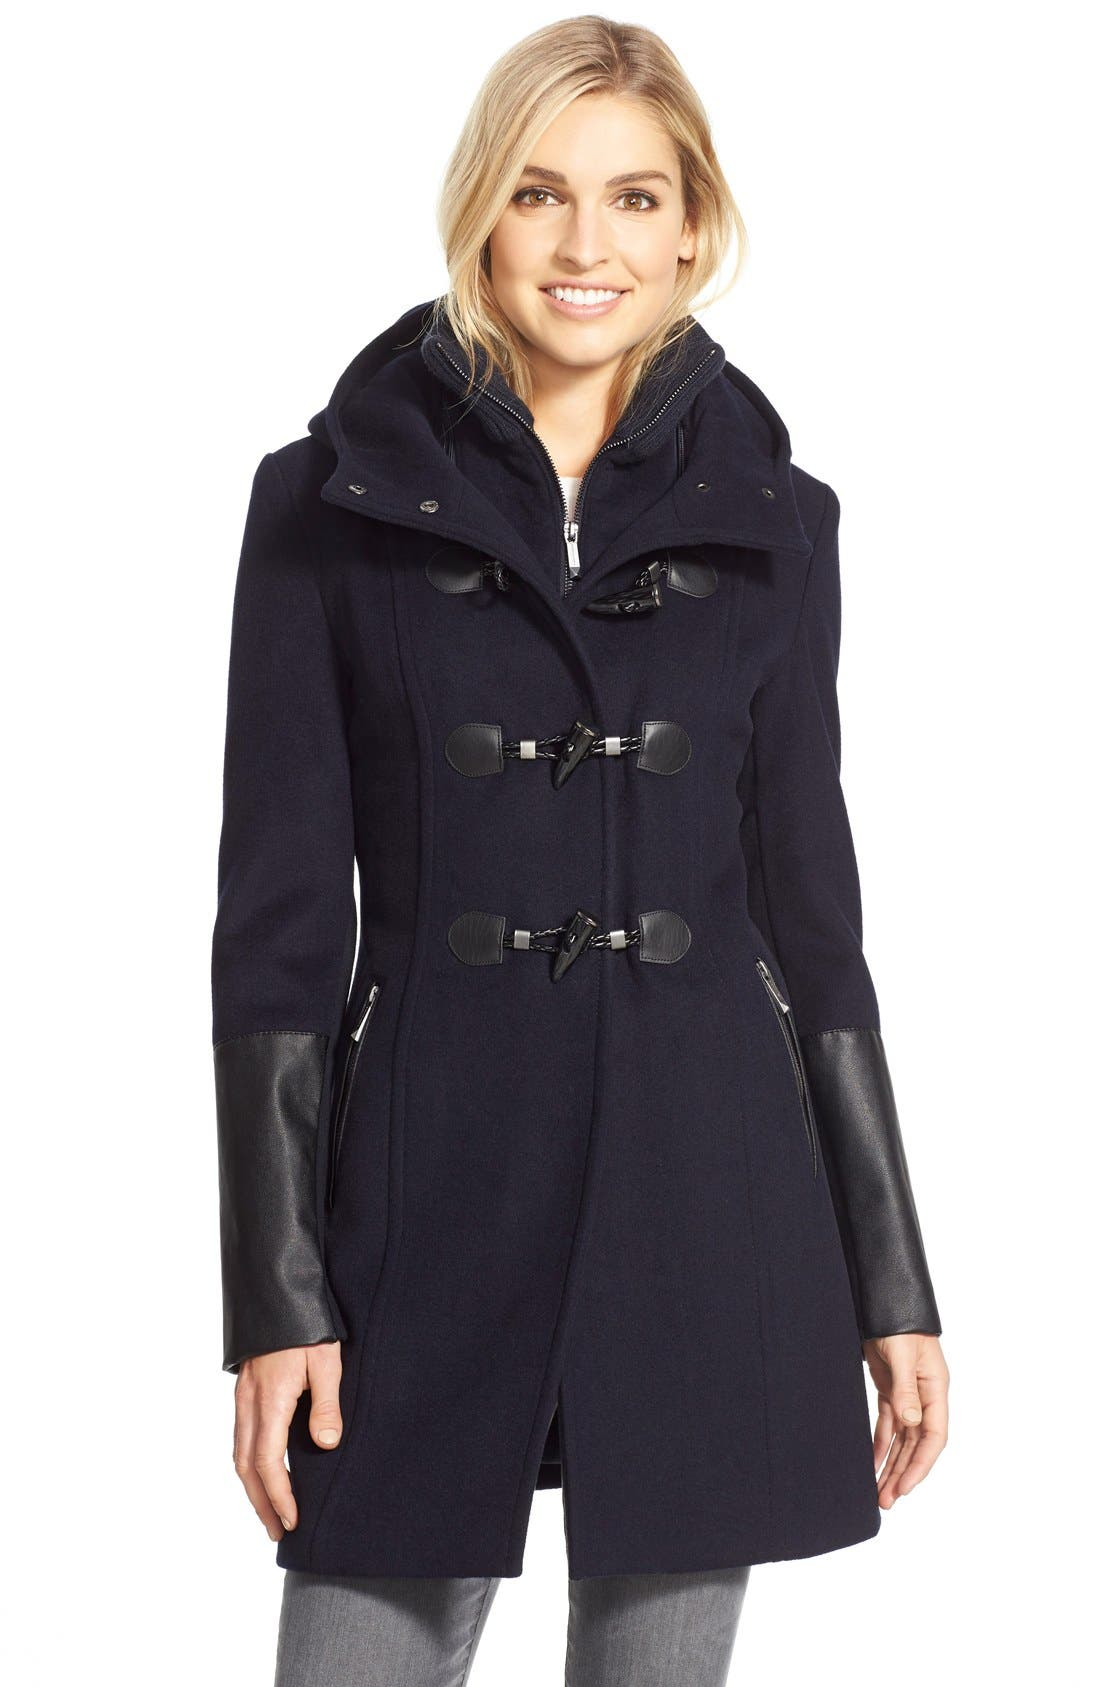 Alternate Image 1 Selected - BCBGMAXAZRIA Faux Leather Trim Wool Blend Duffle Coat with Inset Bib